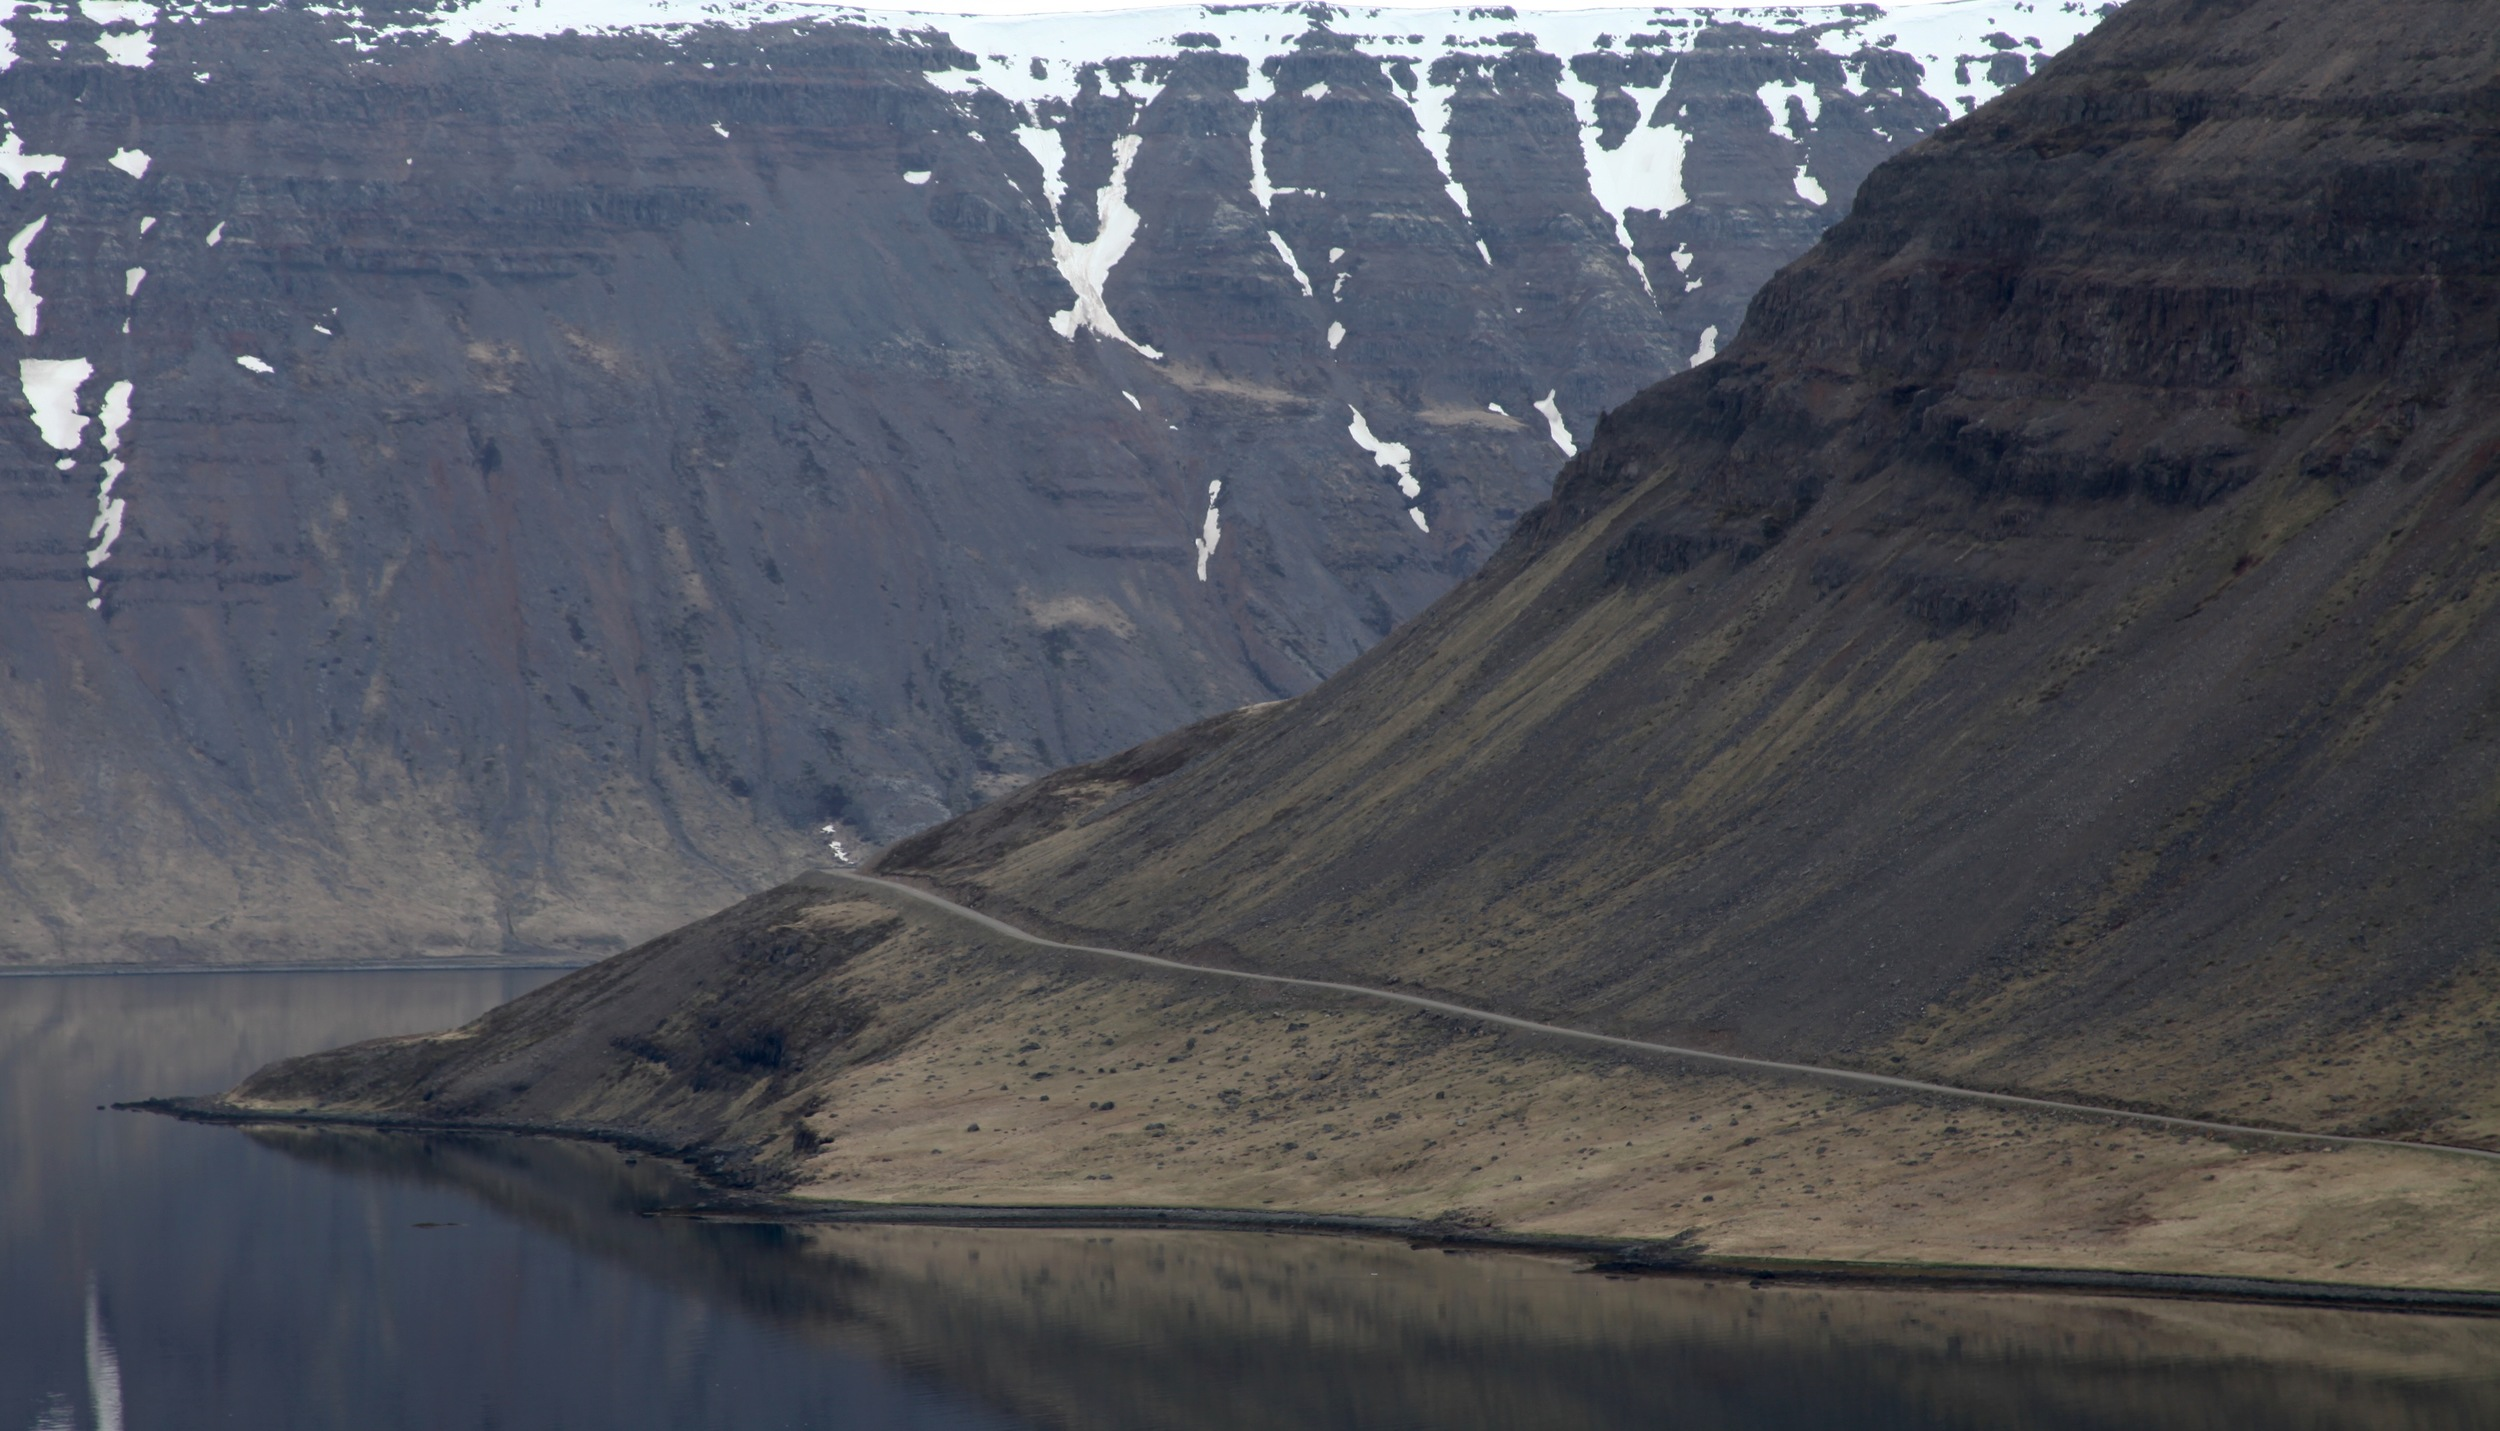 Much of Iceland's Westfjords region is inaccessible in winter (Photo by Andrew Evans)